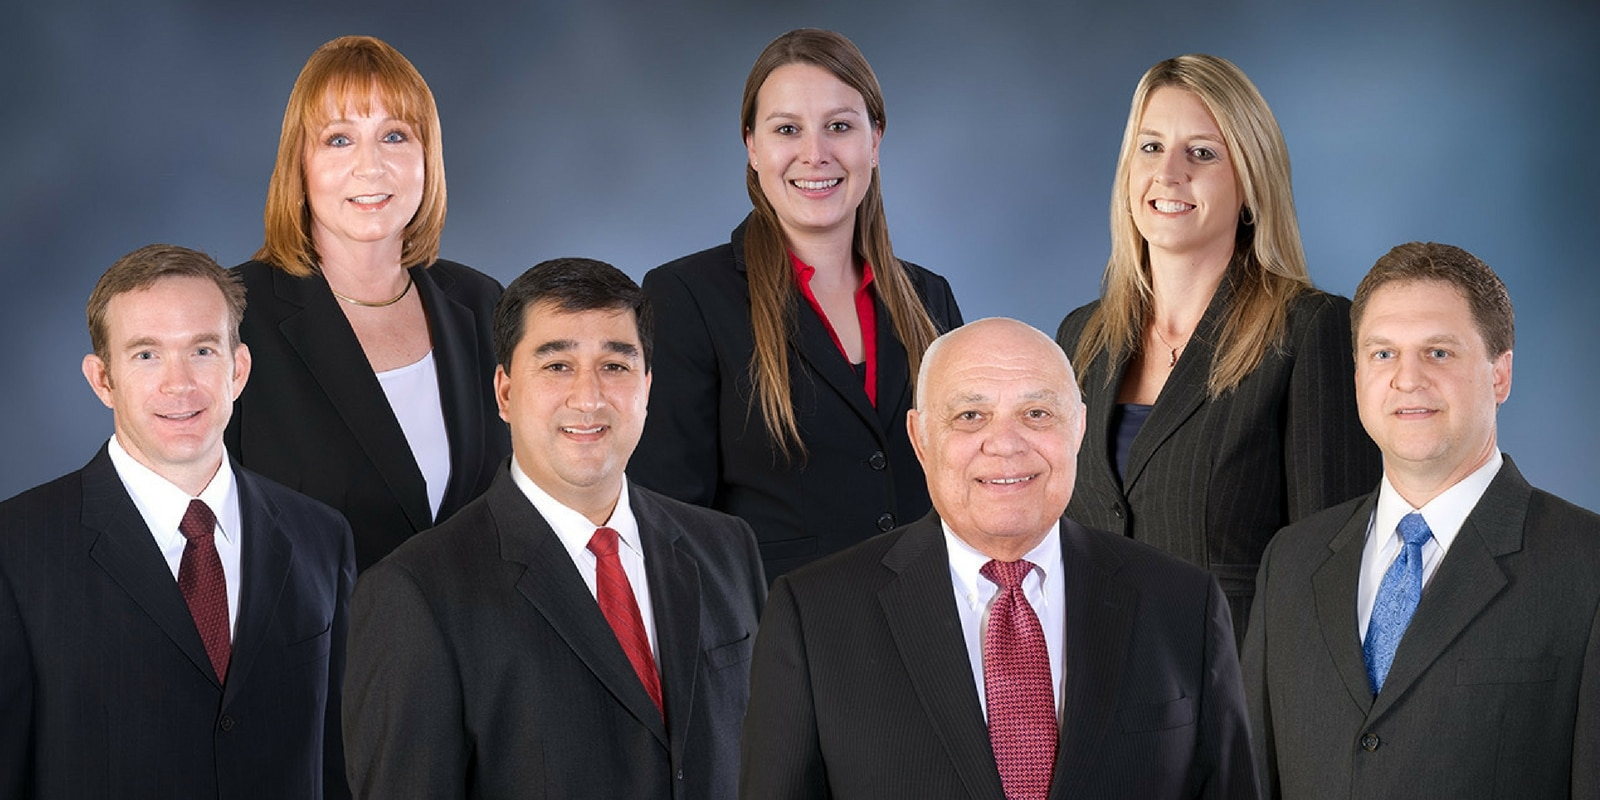 Bring Your Legal Issue to Wadler Perches Hundl & Kerlick